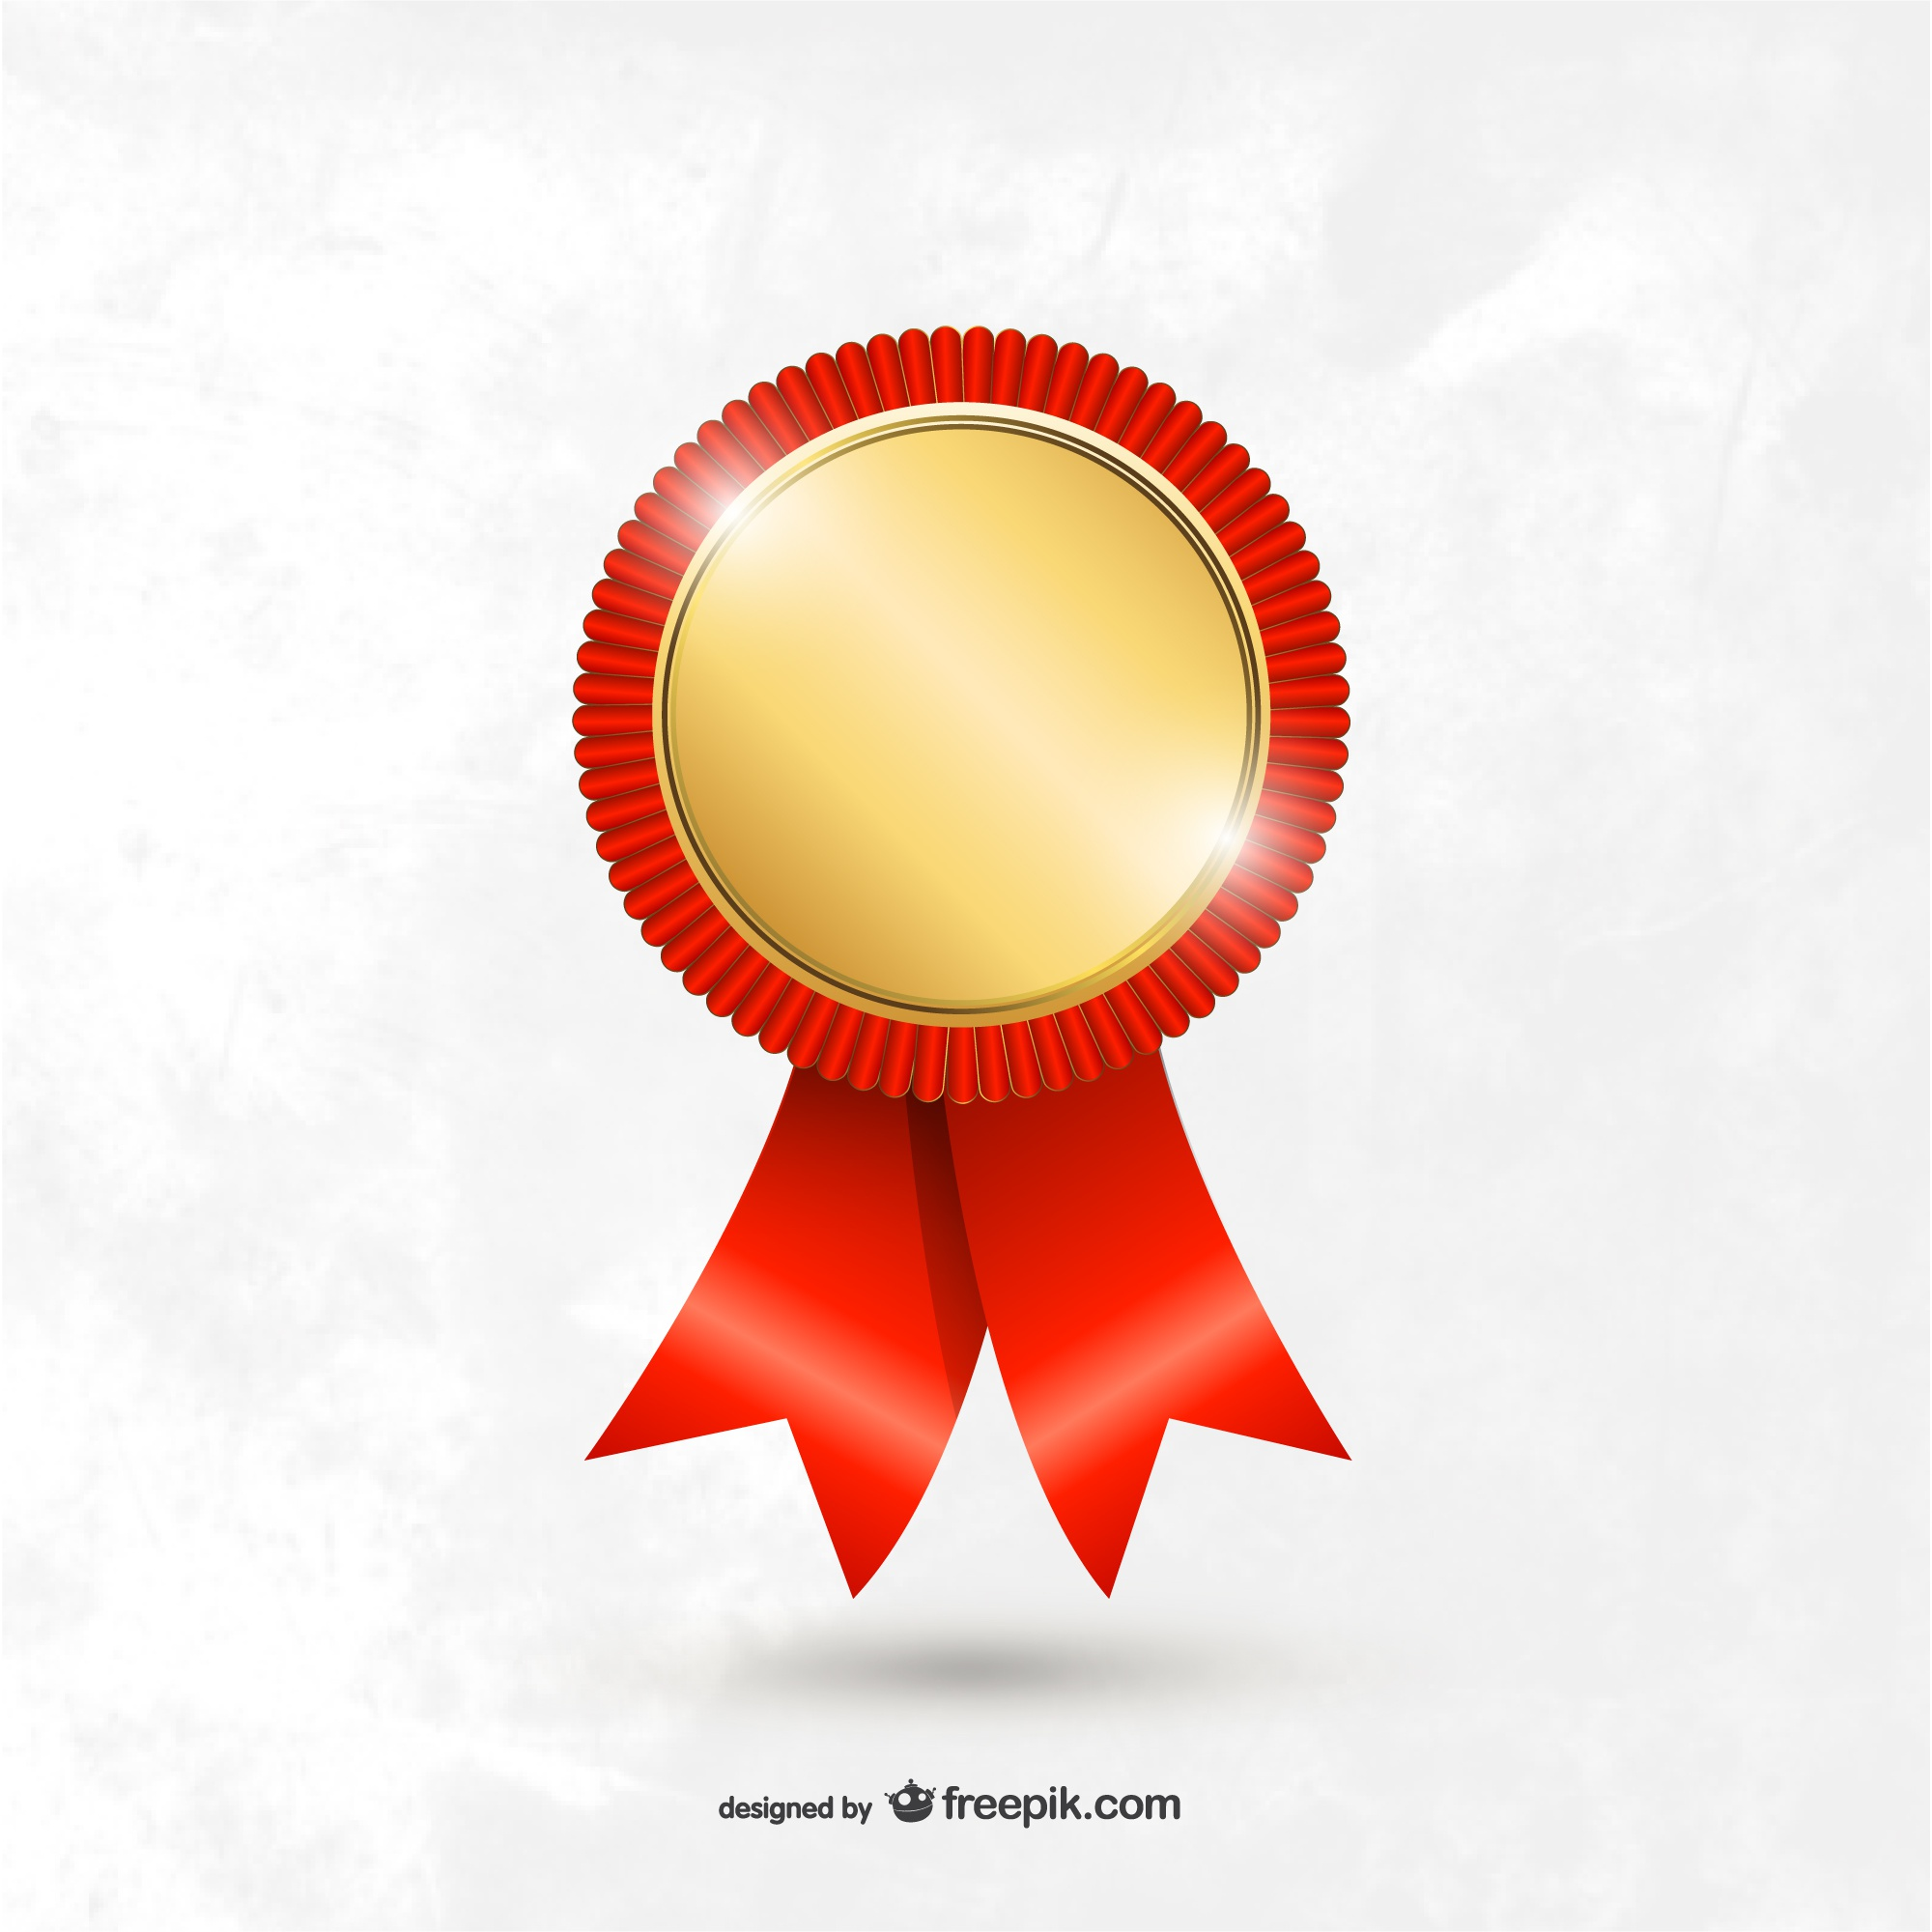 Award medal template